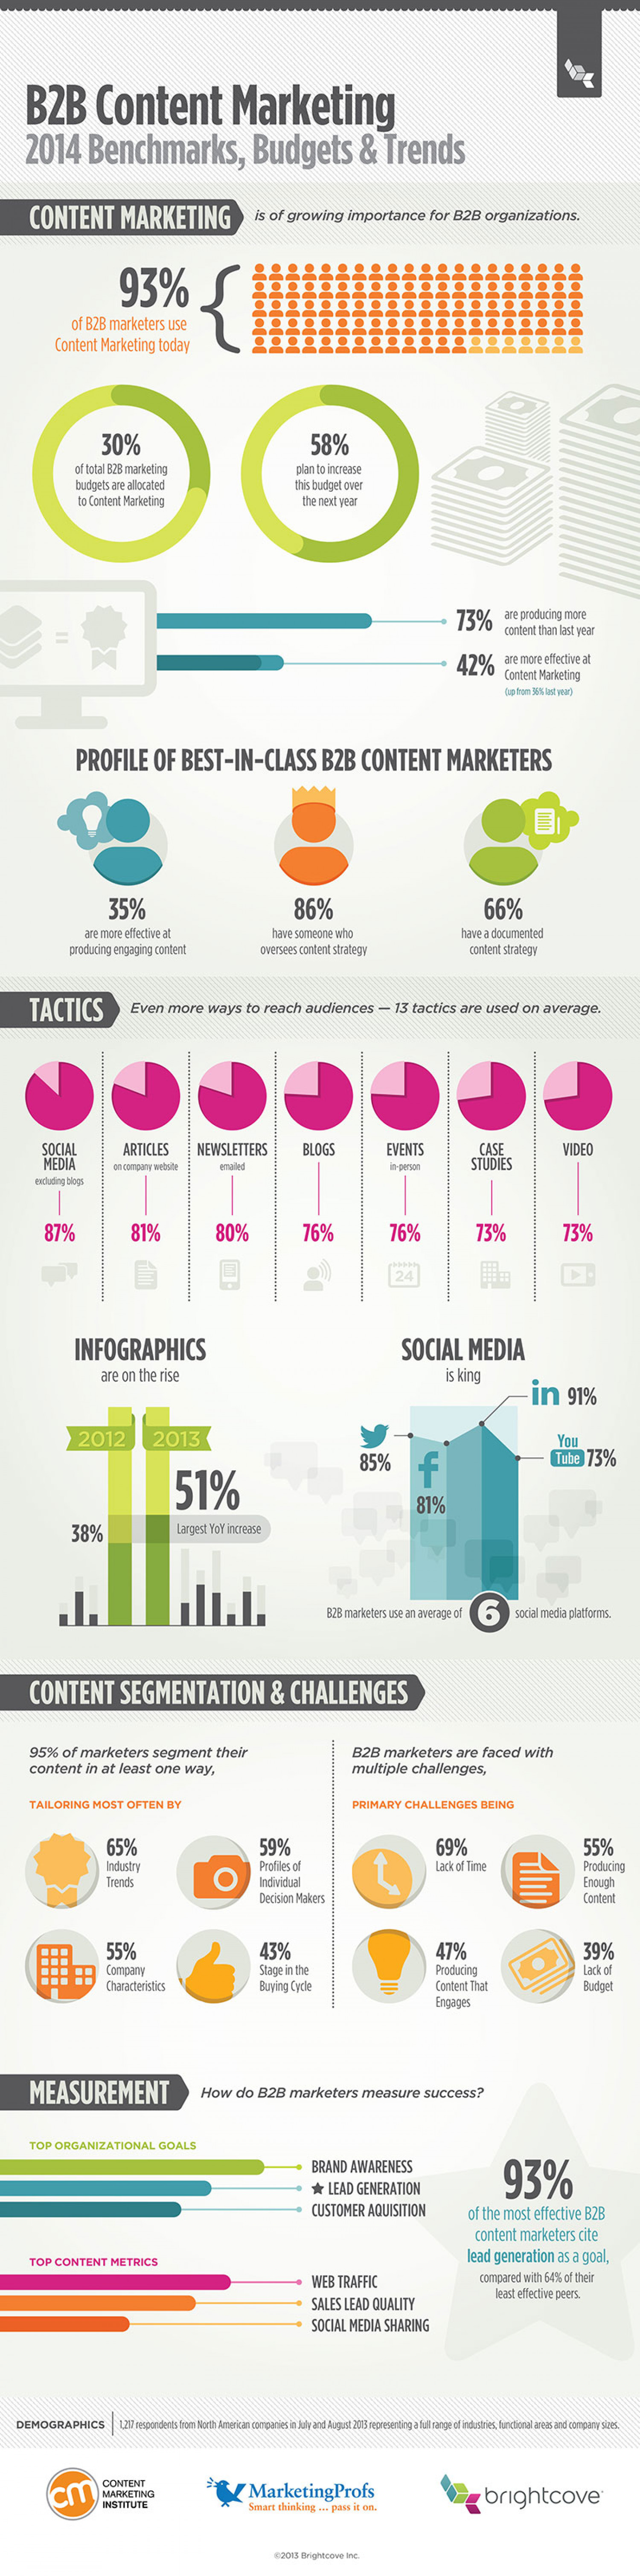 B2B Content Marketing: 2014 Benchmarks, Budgets and Trends Infographic